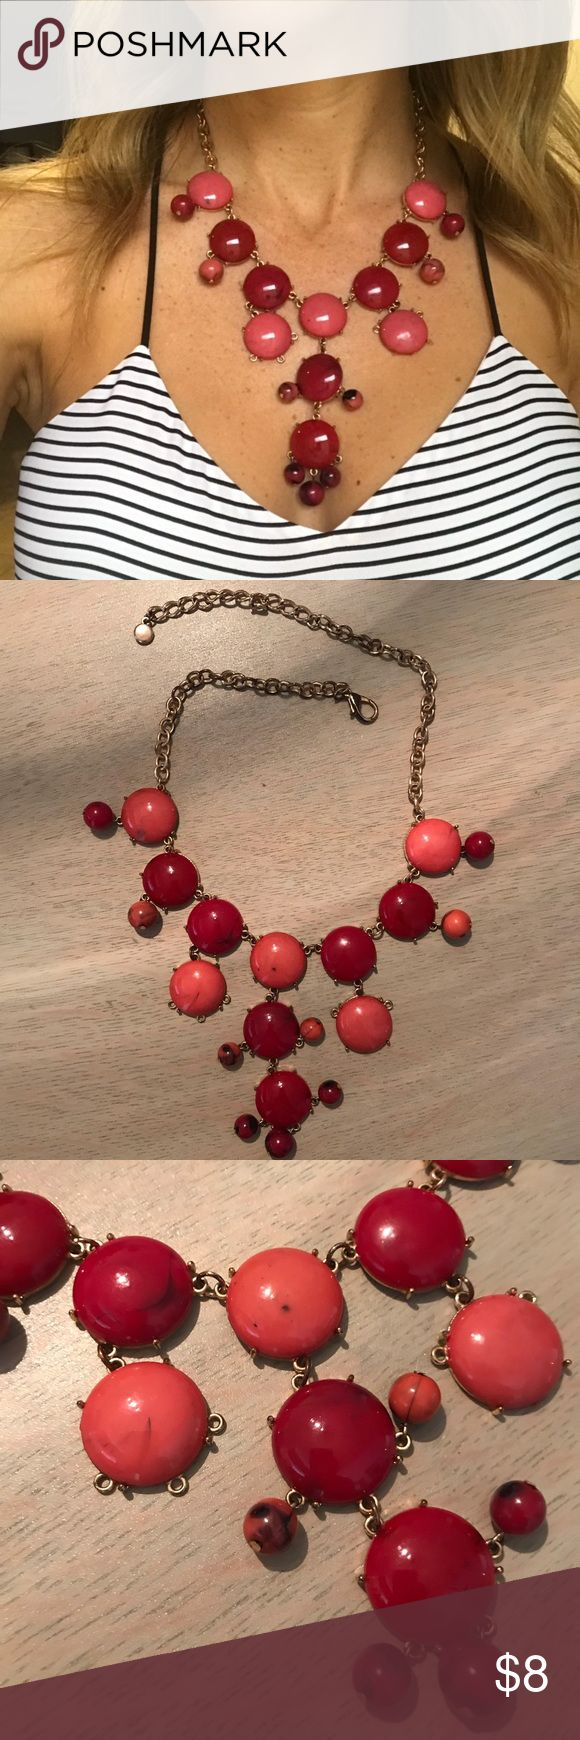 Red bubble necklace ❤️ Red bubble necklace with gold hardware. Adjustable! Jewelry Necklaces